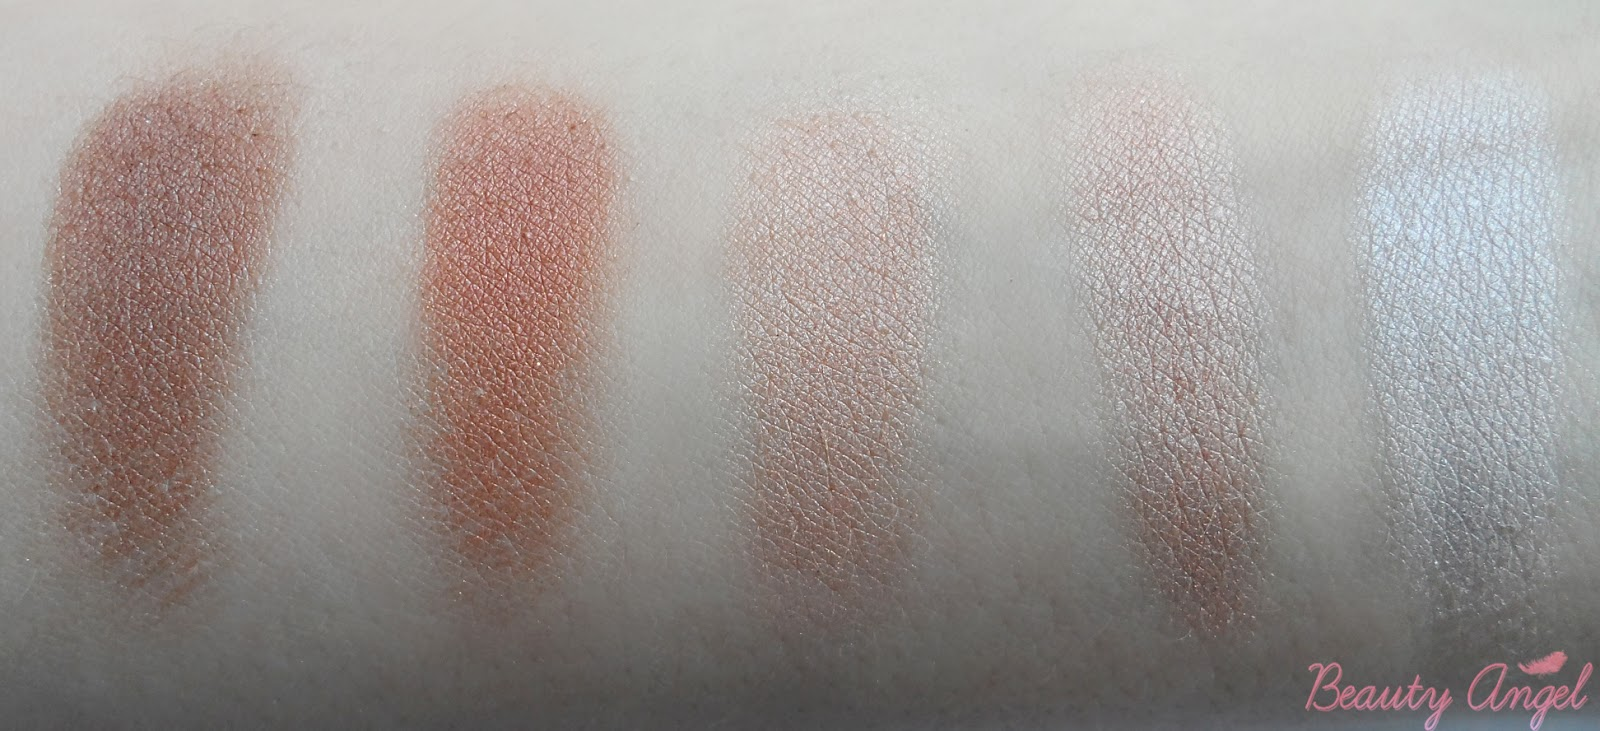 beauty uk cosmetics review swatches pictures